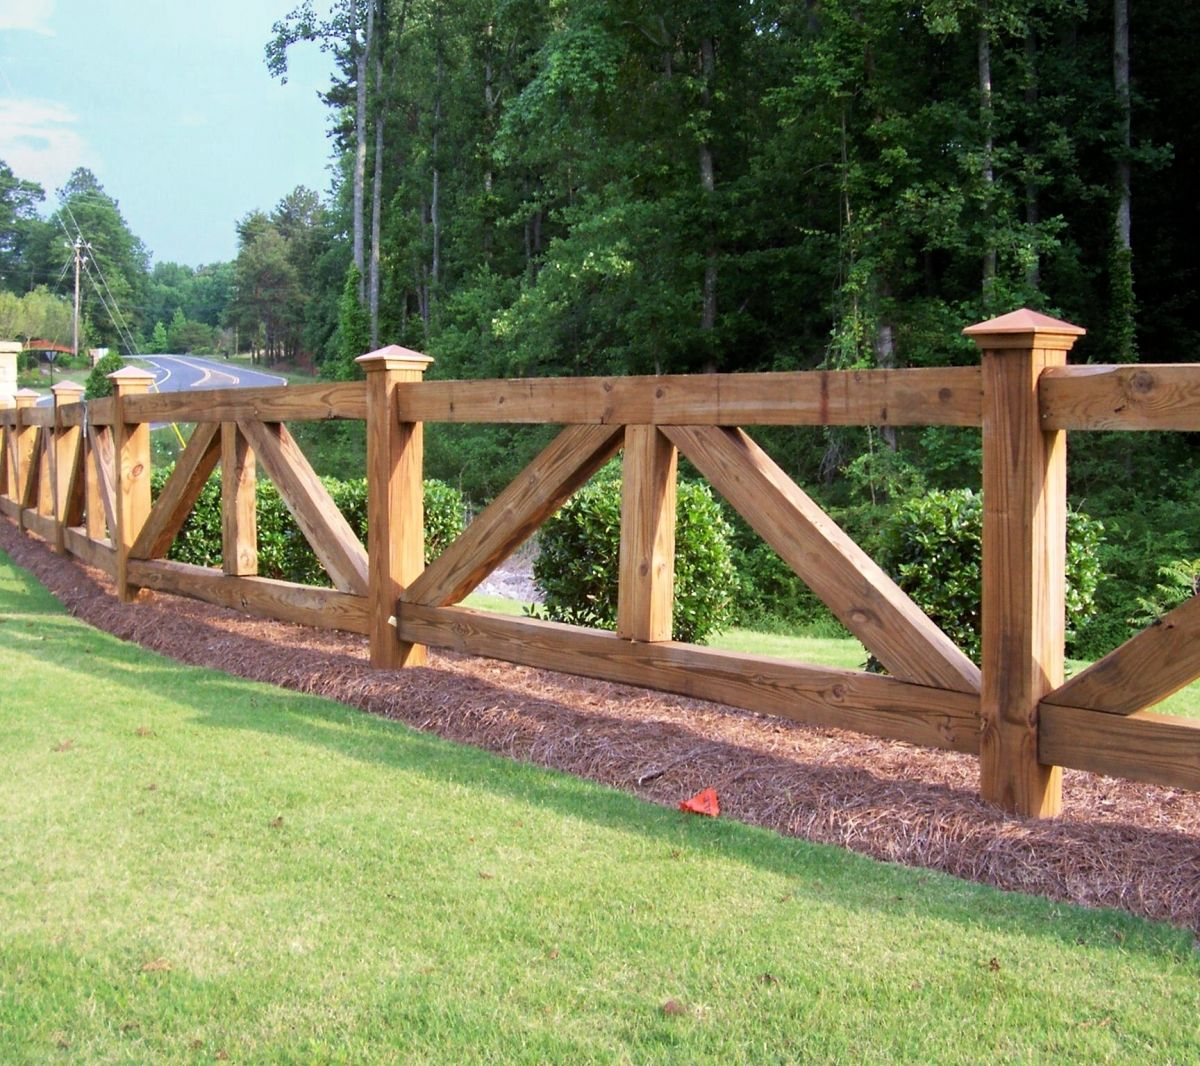 Custom wood ranch rail fencing by mossy oak fence company central ranch style wood fence designs wooden fences farm fences wood fences farmhouse fence fence design added on june 2016 at write teens baanklon Gallery